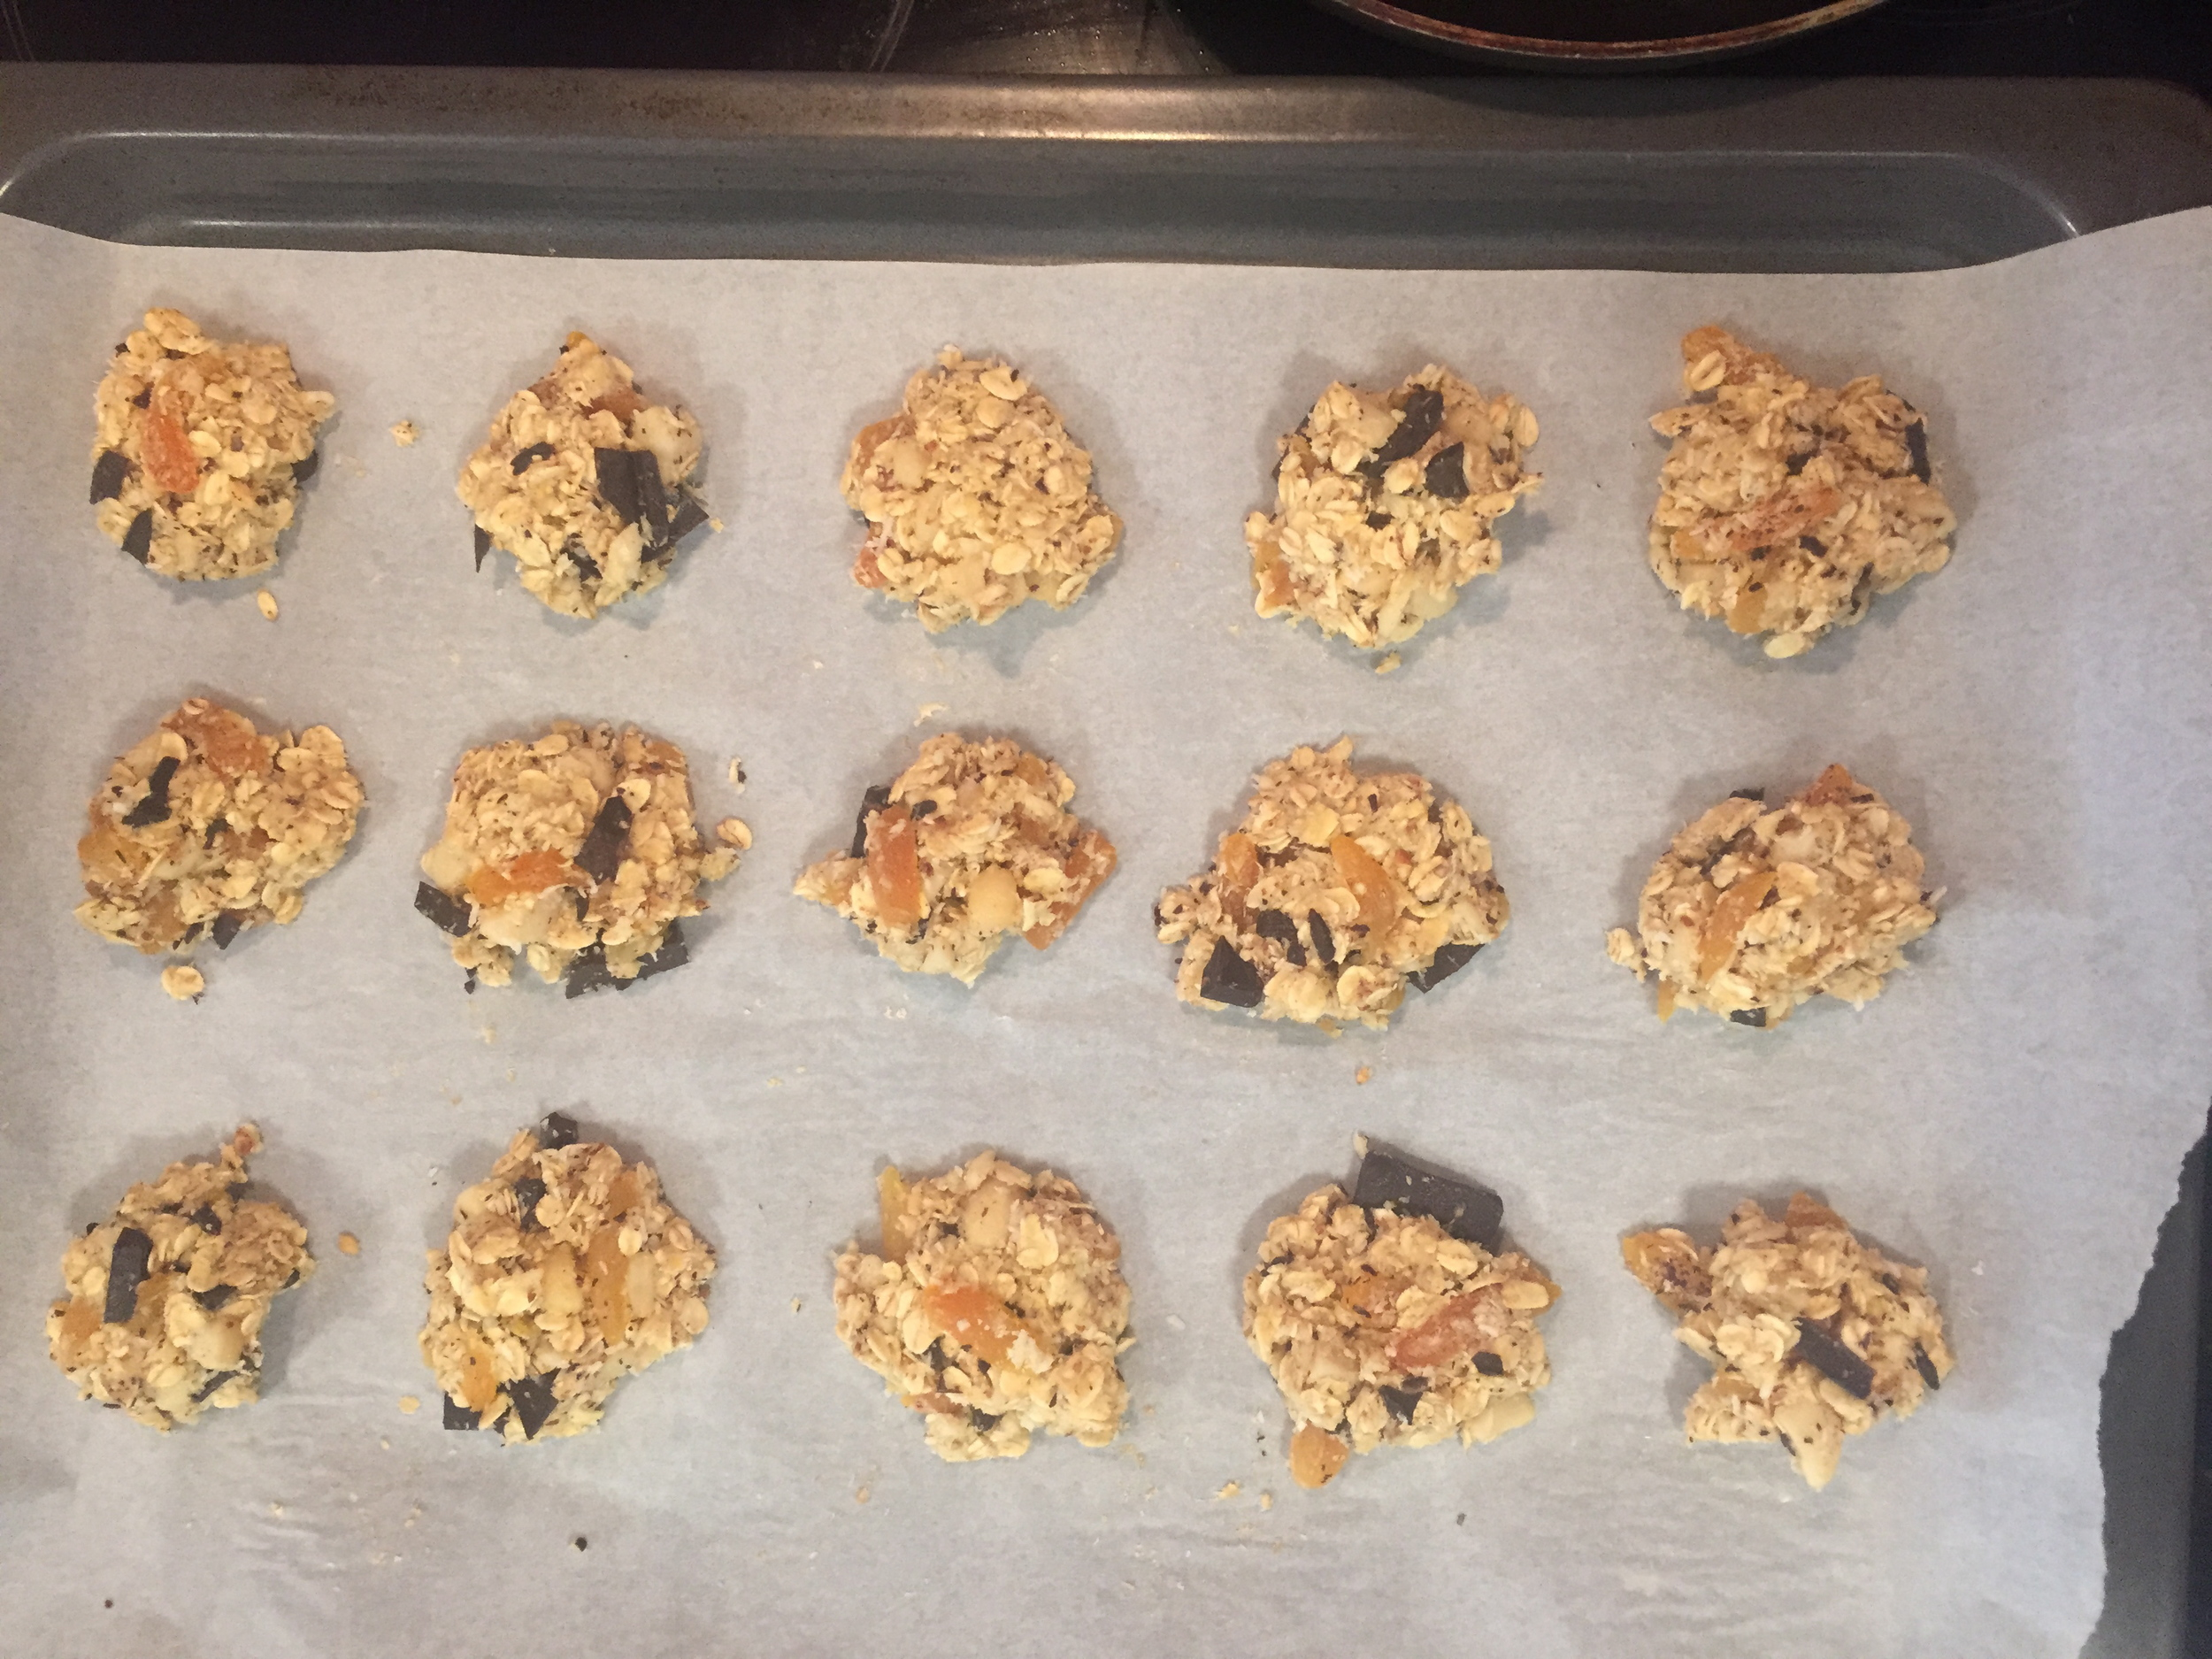 oatmeal-cookies-on-tray